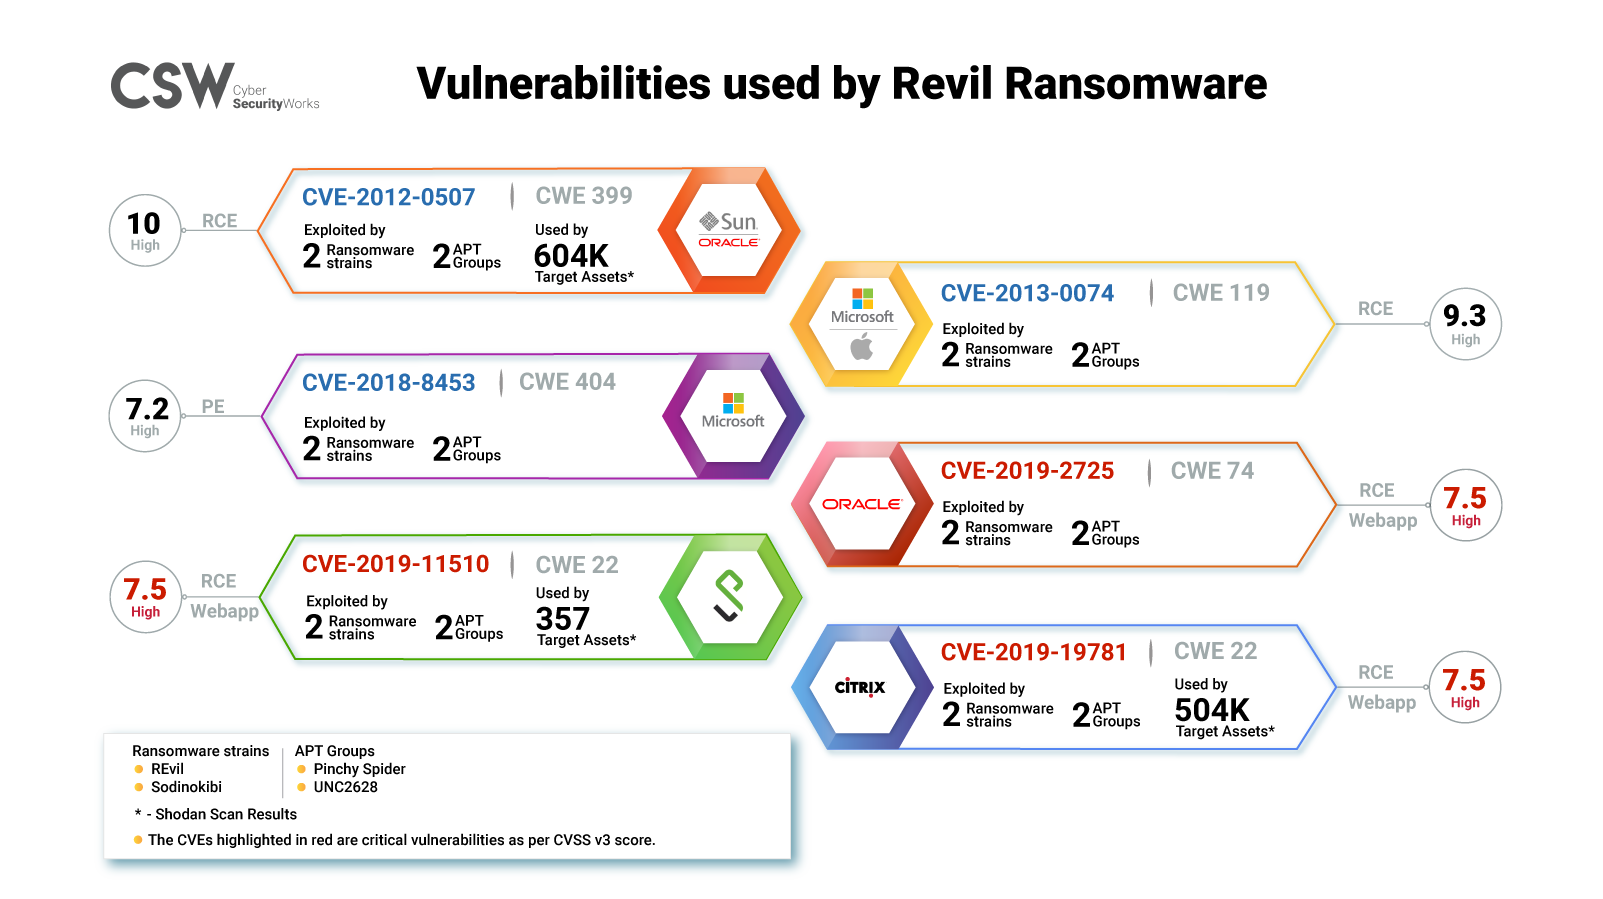 Vulnerabilities exploited by REvil ransomware